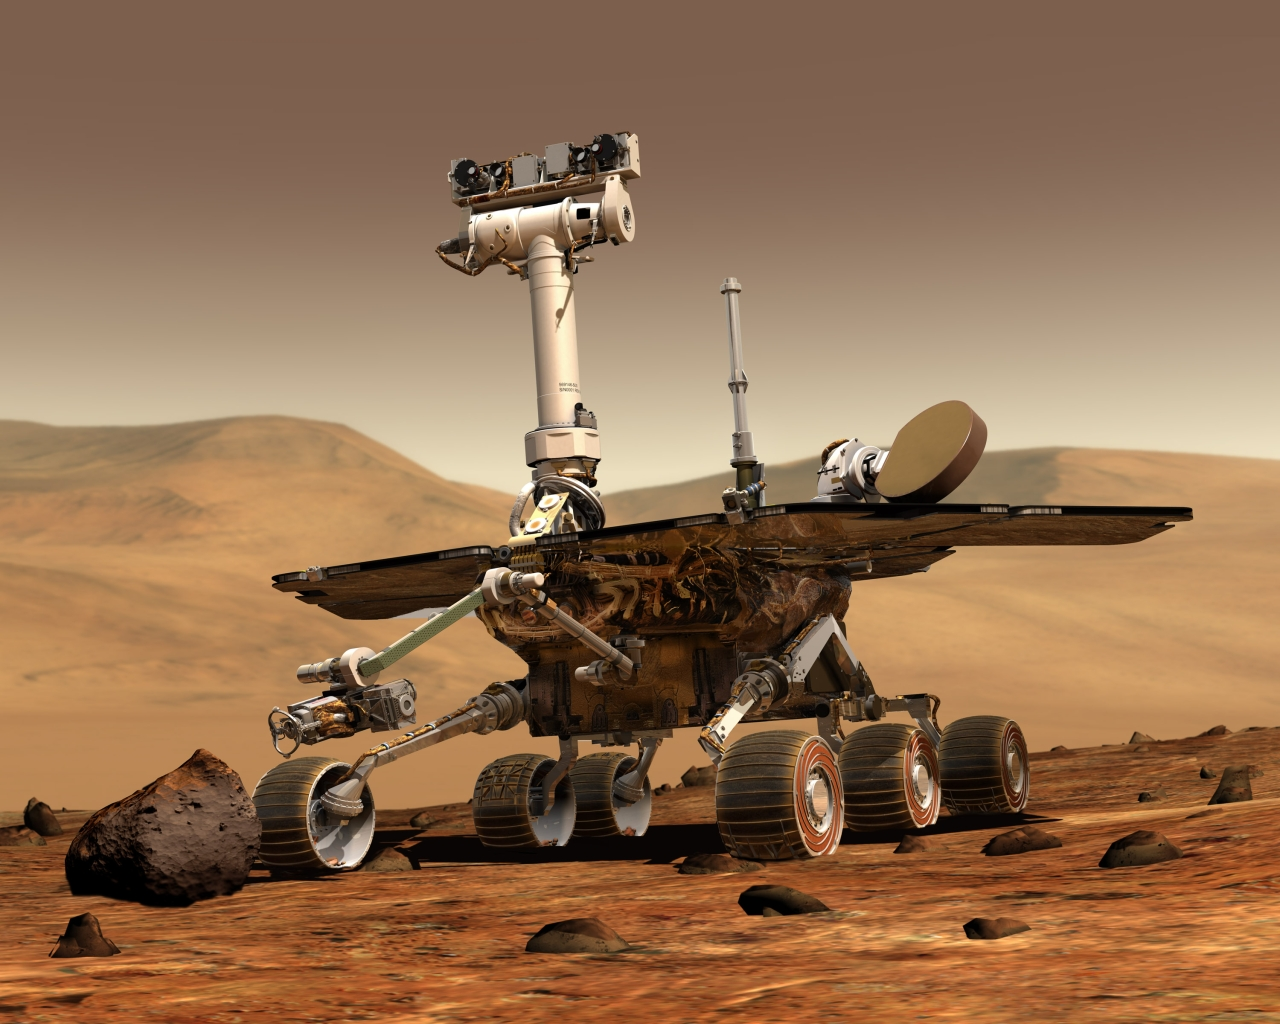 Artist's rendering of a Mars Exploration Rover